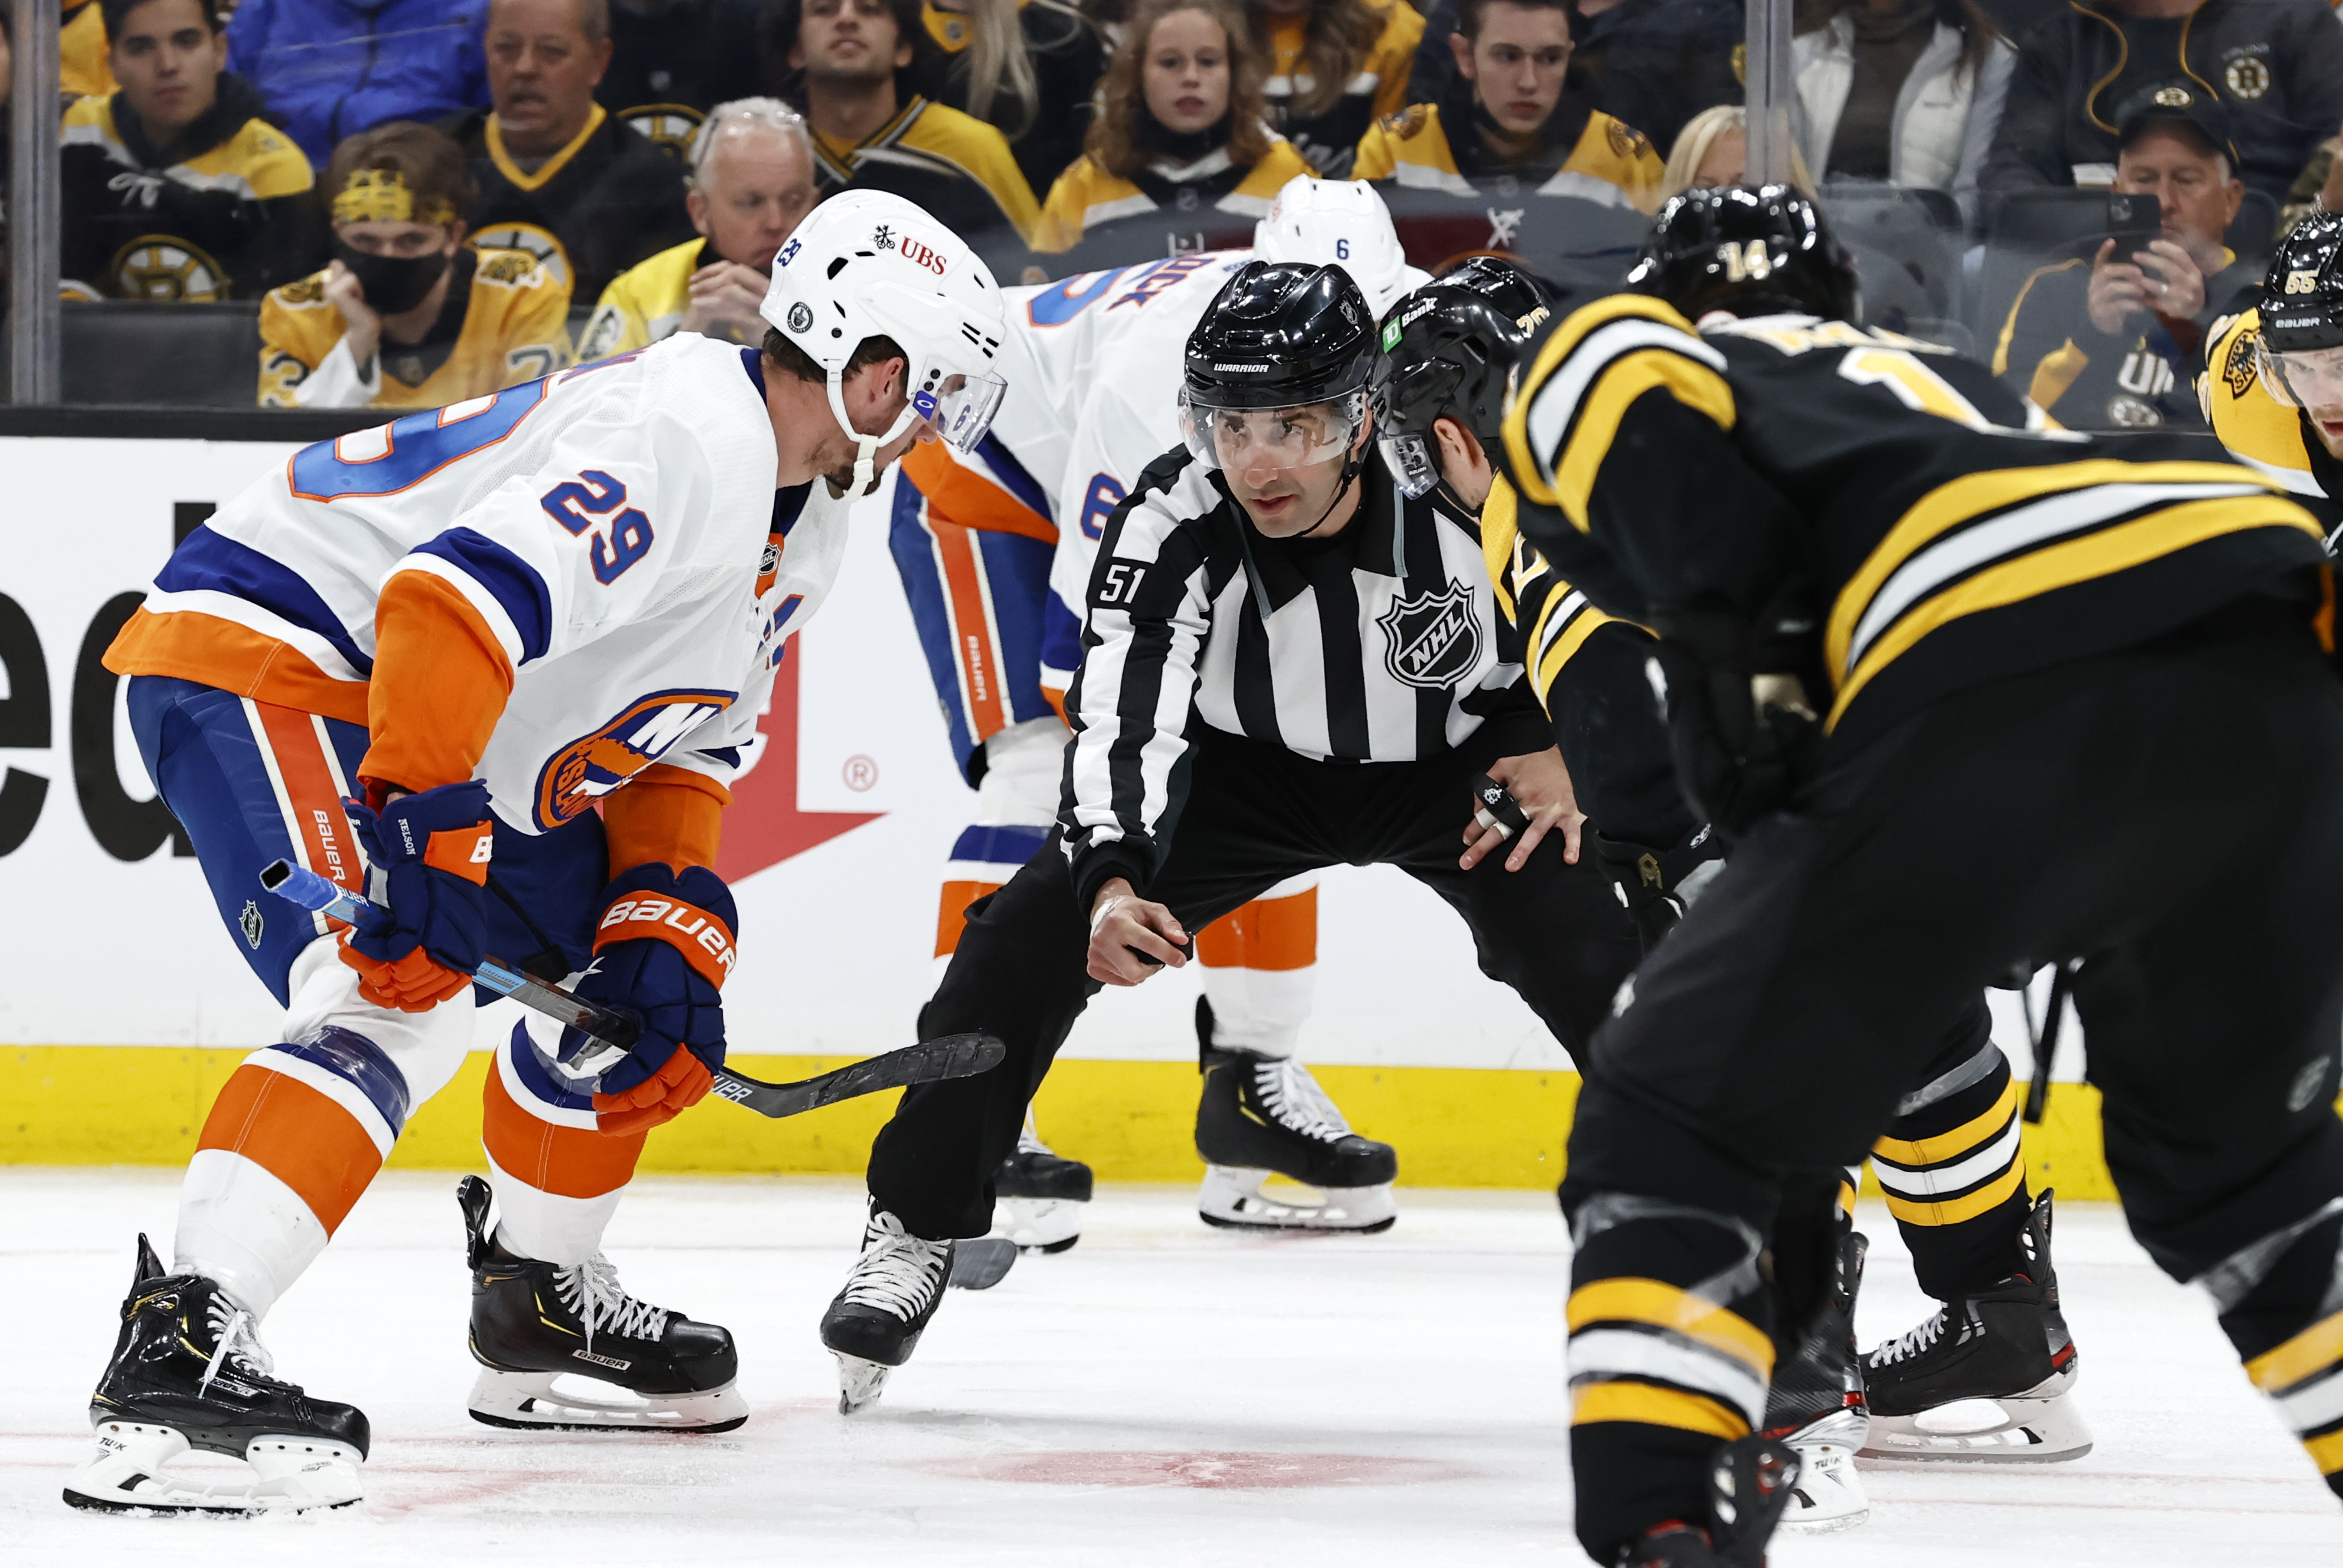 NHL: MAY 29 Stanley Cup Playoffs Second Round - Islanders at Bruins